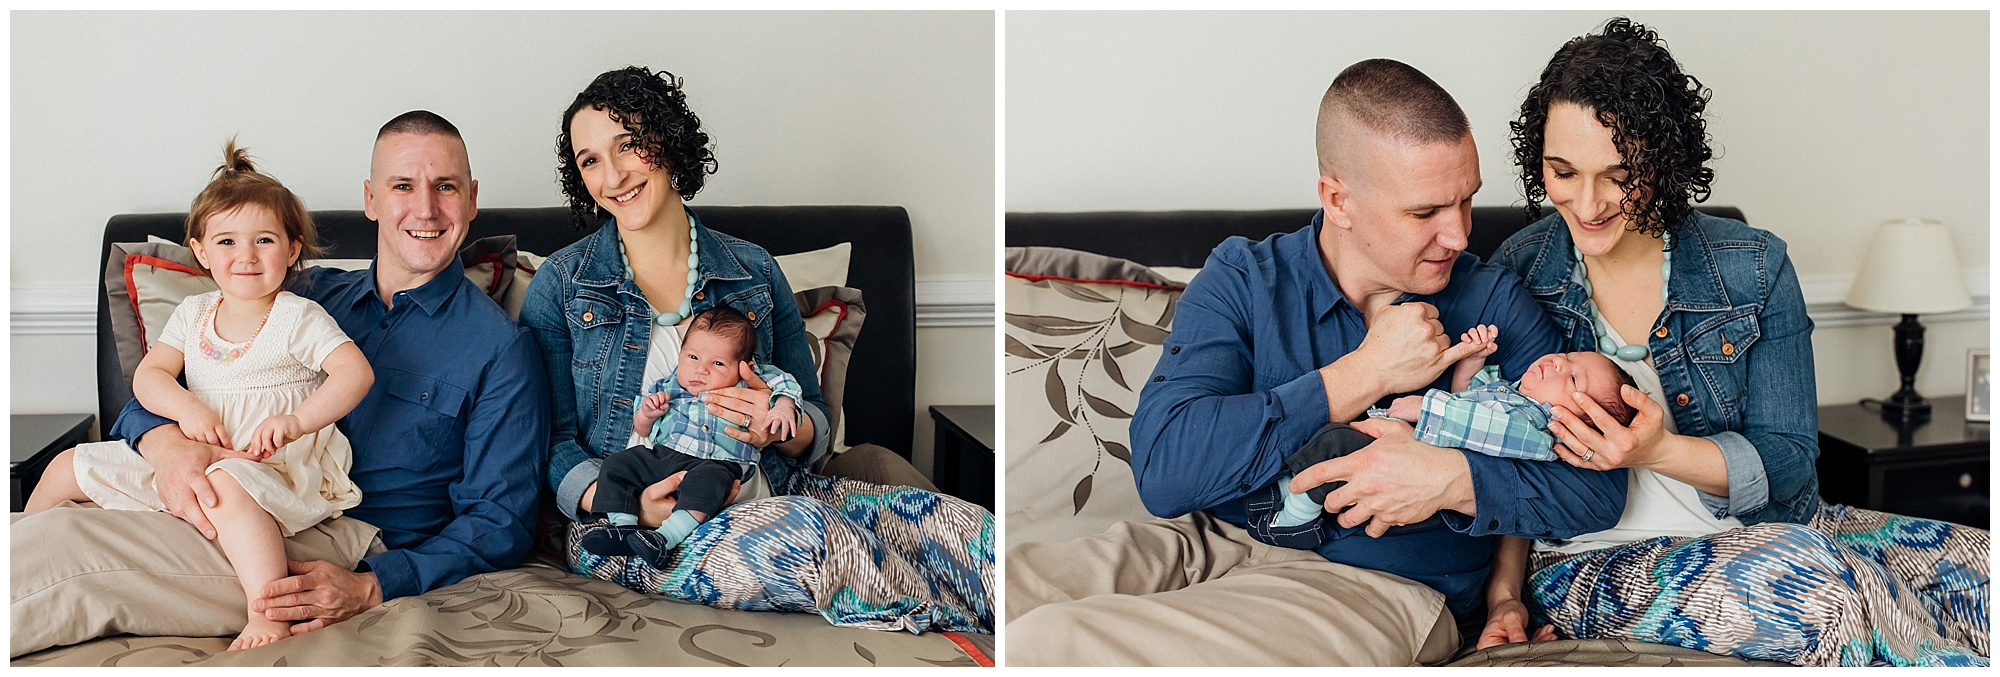 Newborn boy with parents and sister. Taken by local photographer in Bristow Virginia